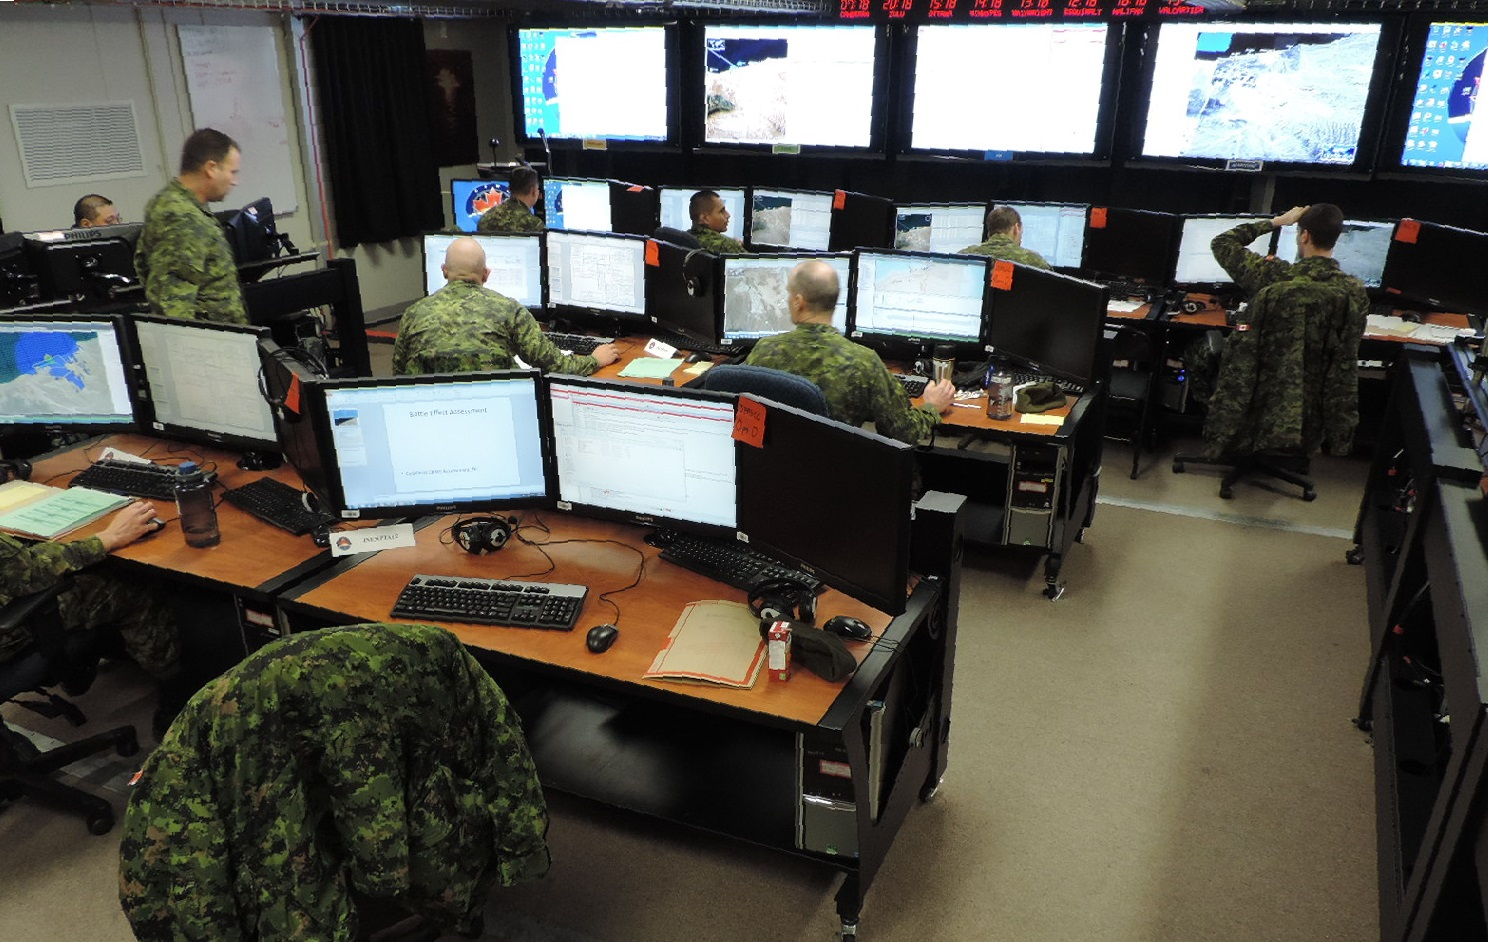 Operators from the Canadian Army's 21 Electronic Warfare (EW) Regiment simulating offensive EW operations against virtual forces during the JNEX-1 experiments.